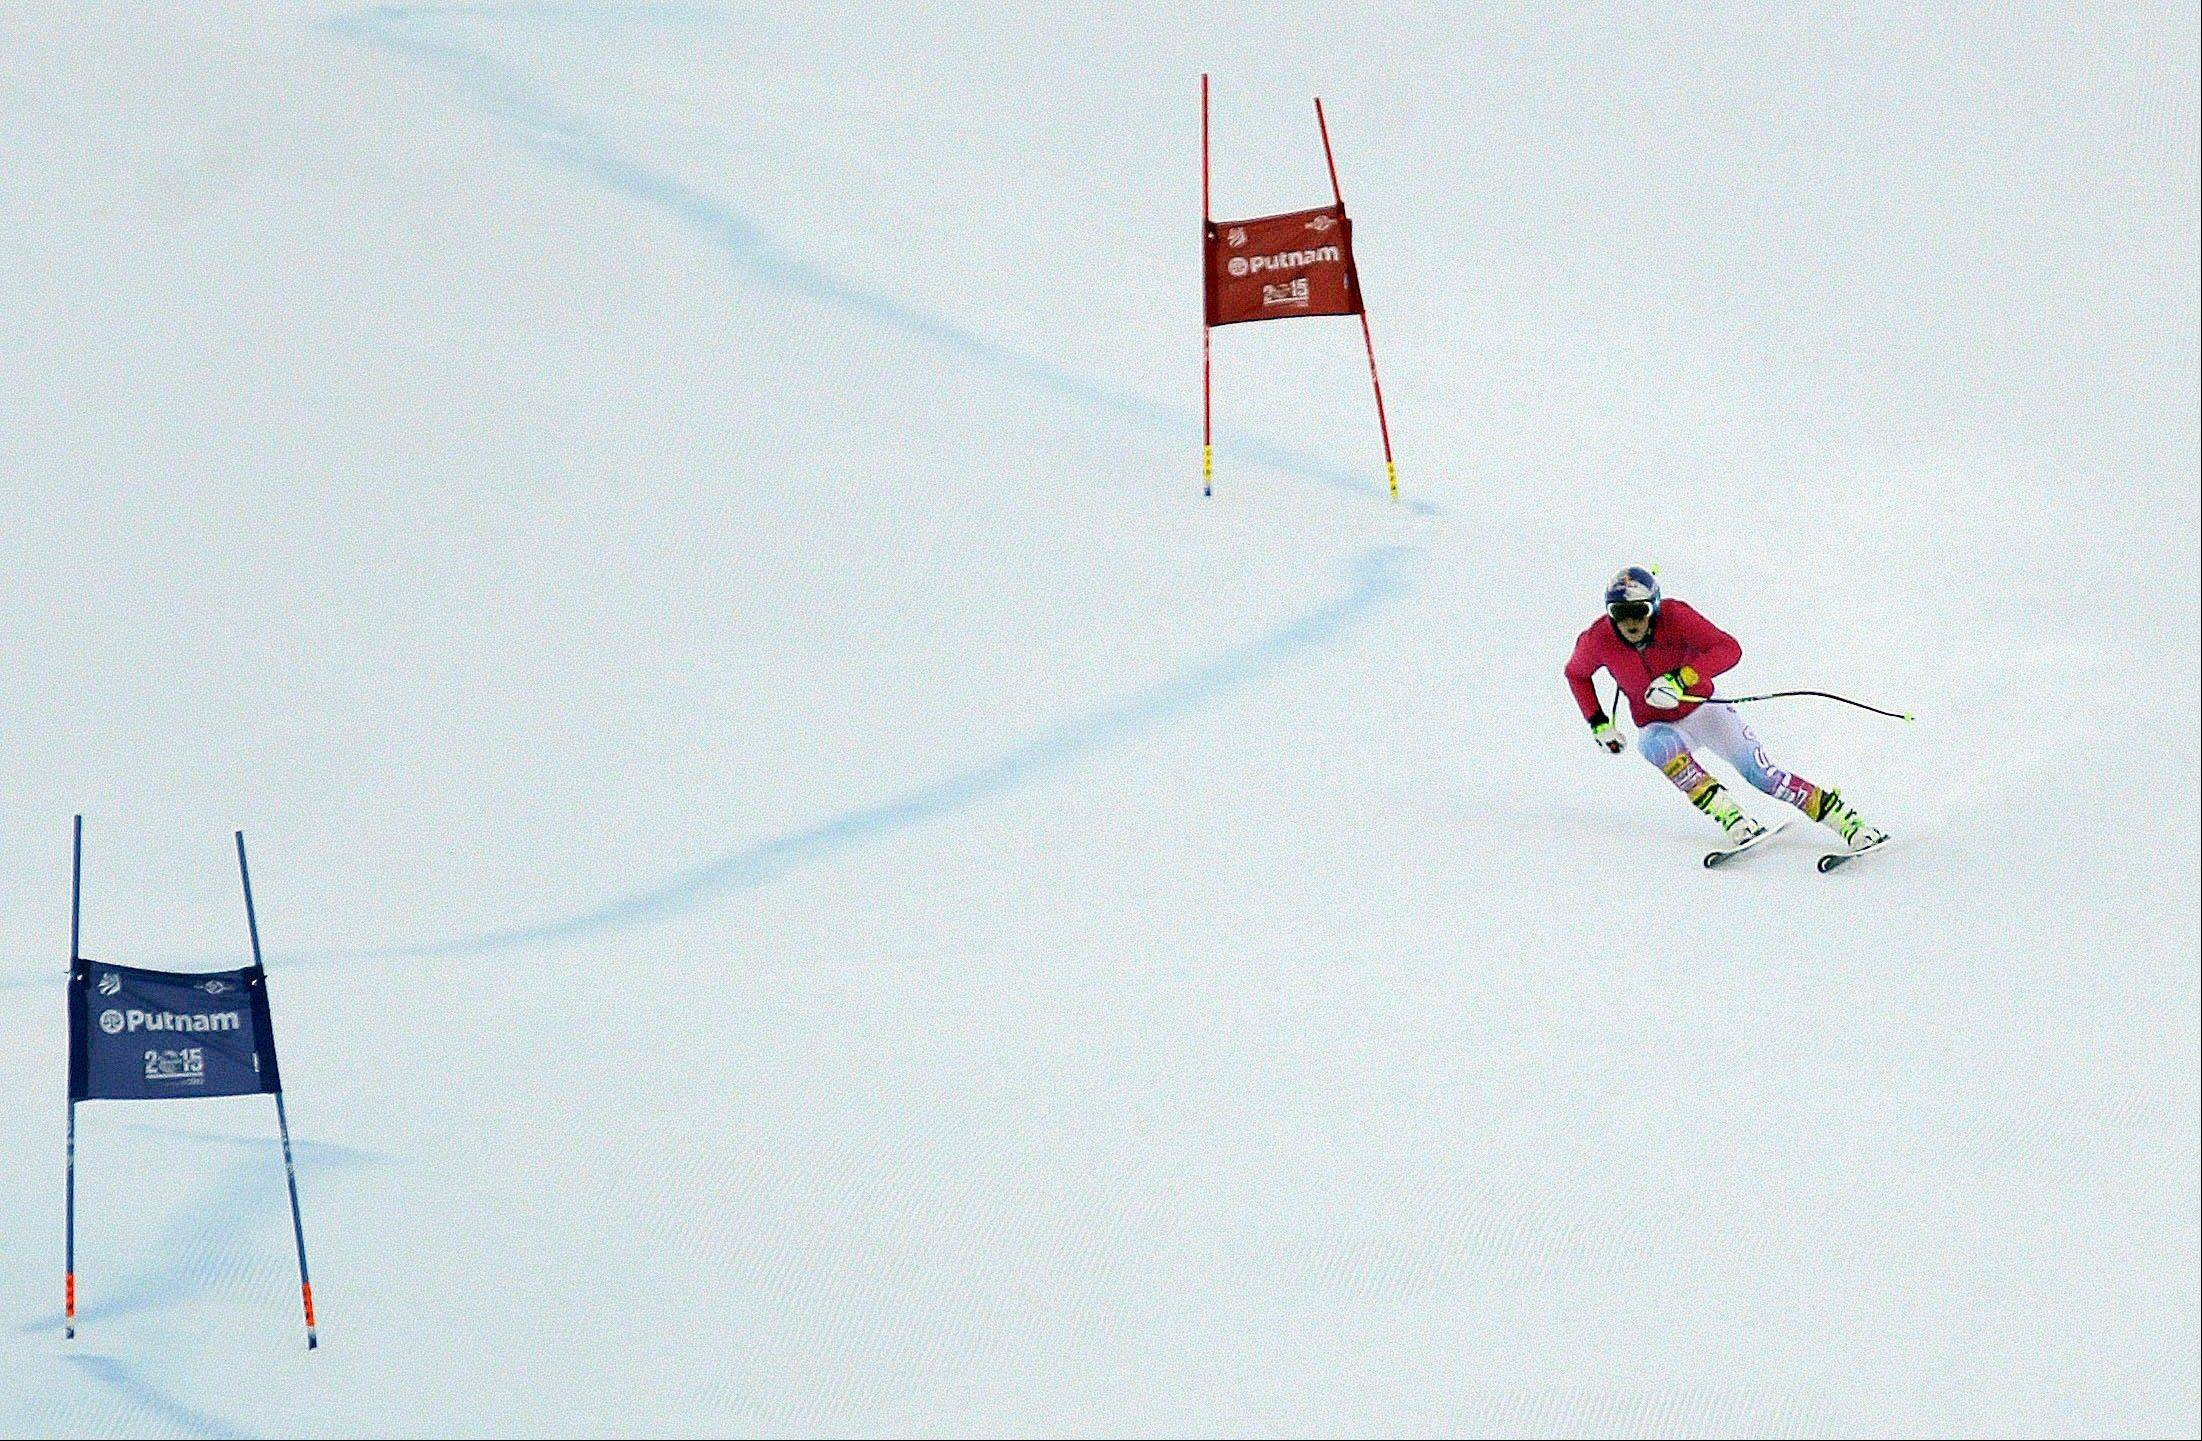 Lindsey Vonn makes a training run down a Super-G course, Friday, Nov. 29, 2013, in Vail, Colo. Vonn was back on the snow for a second day after she partially tore a reconstructed ligament in her right knee during a training mishap in Copper Mountain nine days ago. Although she's skipping the races in Beaver Creek this weekend, the 29-year-old Vonn hasn't ruled out a return to competition in Lake Louise, Alberta, next week. (AP Photo/Julie Jacobson)